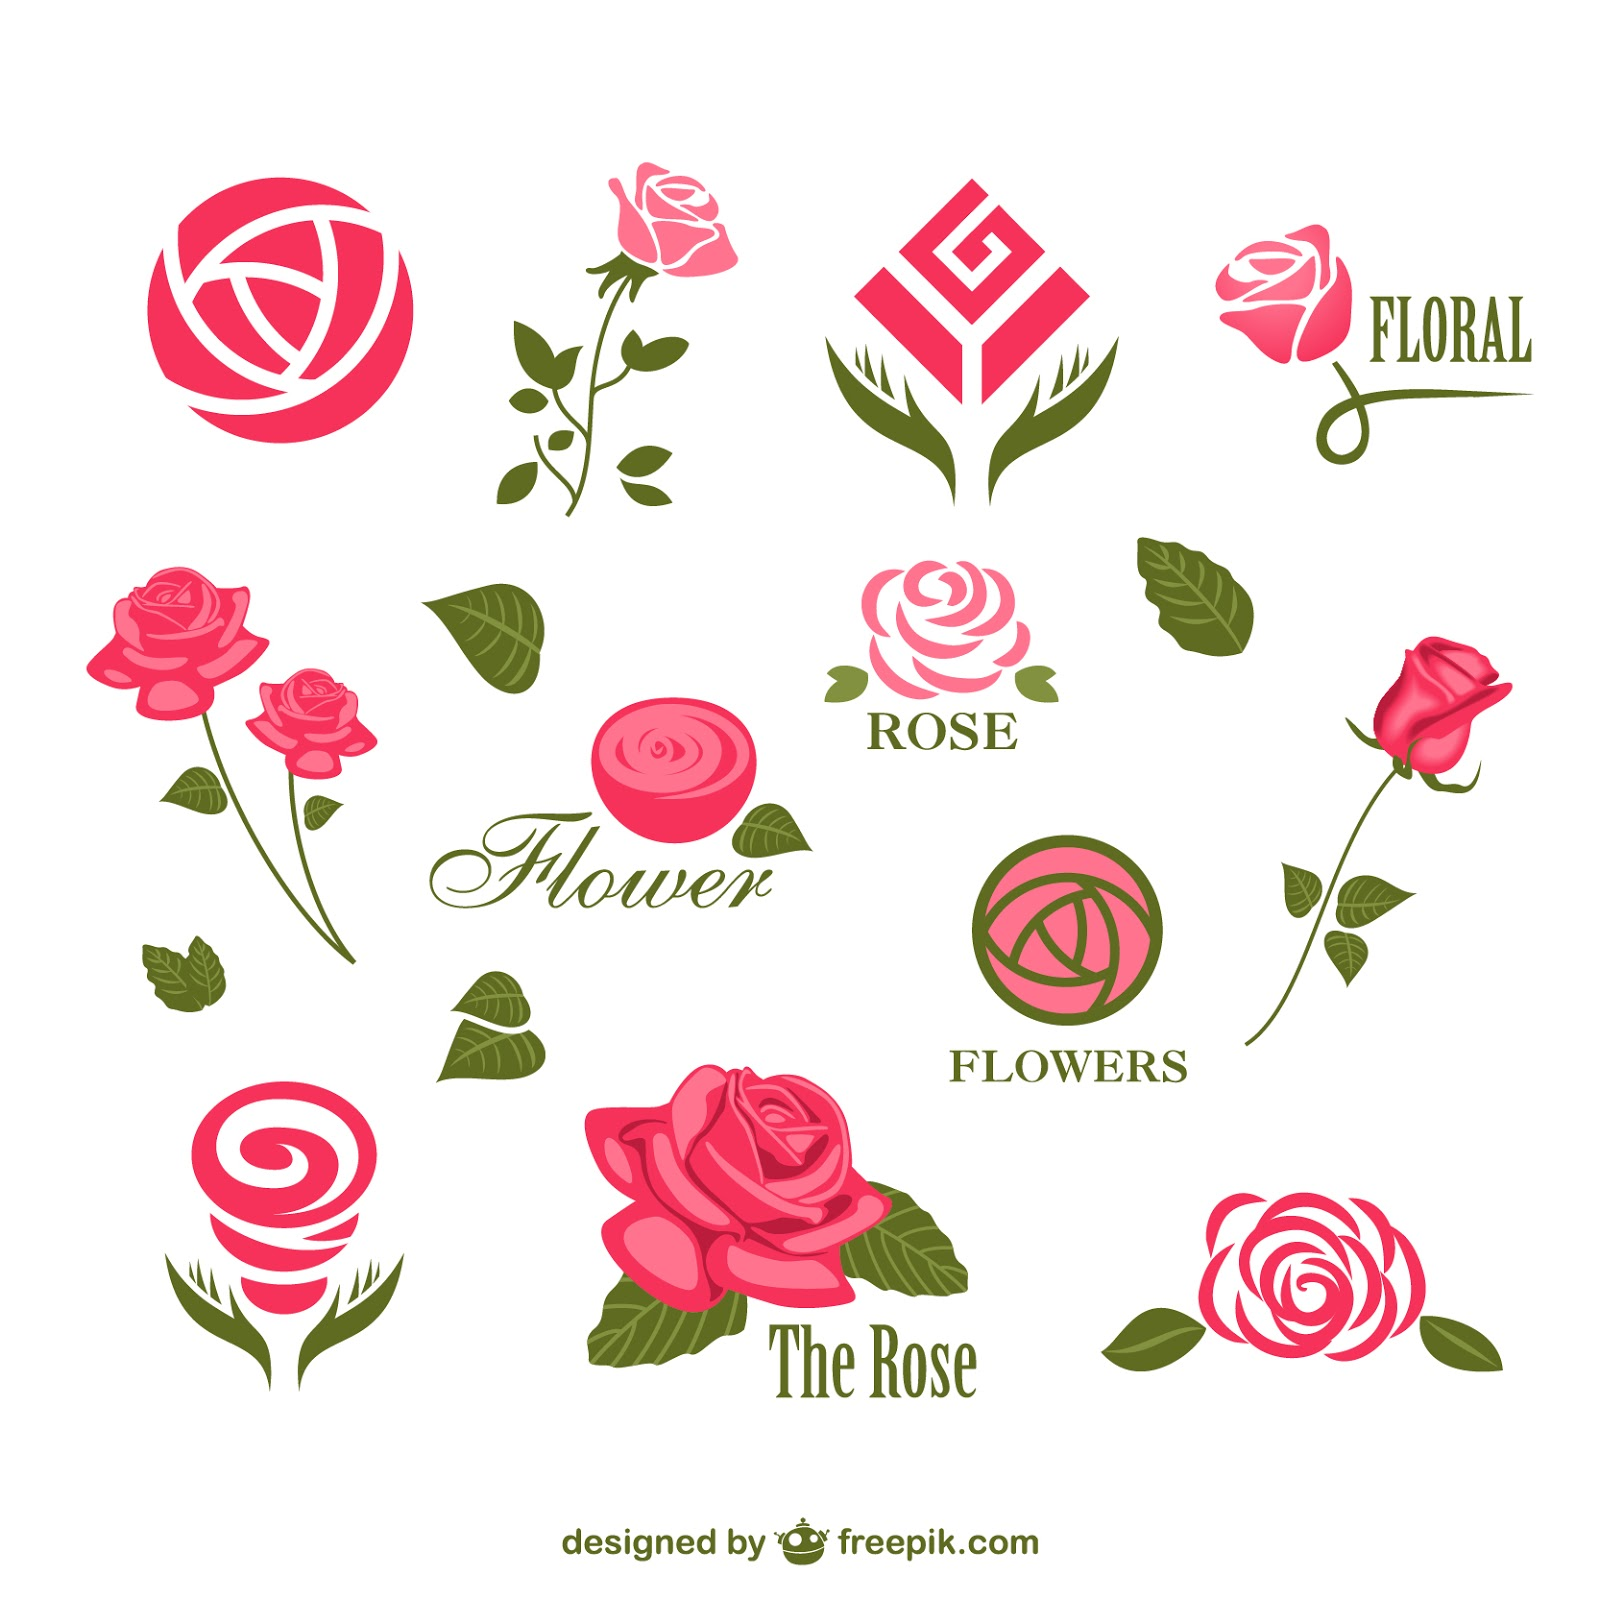 Abstract Rose Logos Free Download Vector CDR, AI, EPS and PNG Formats